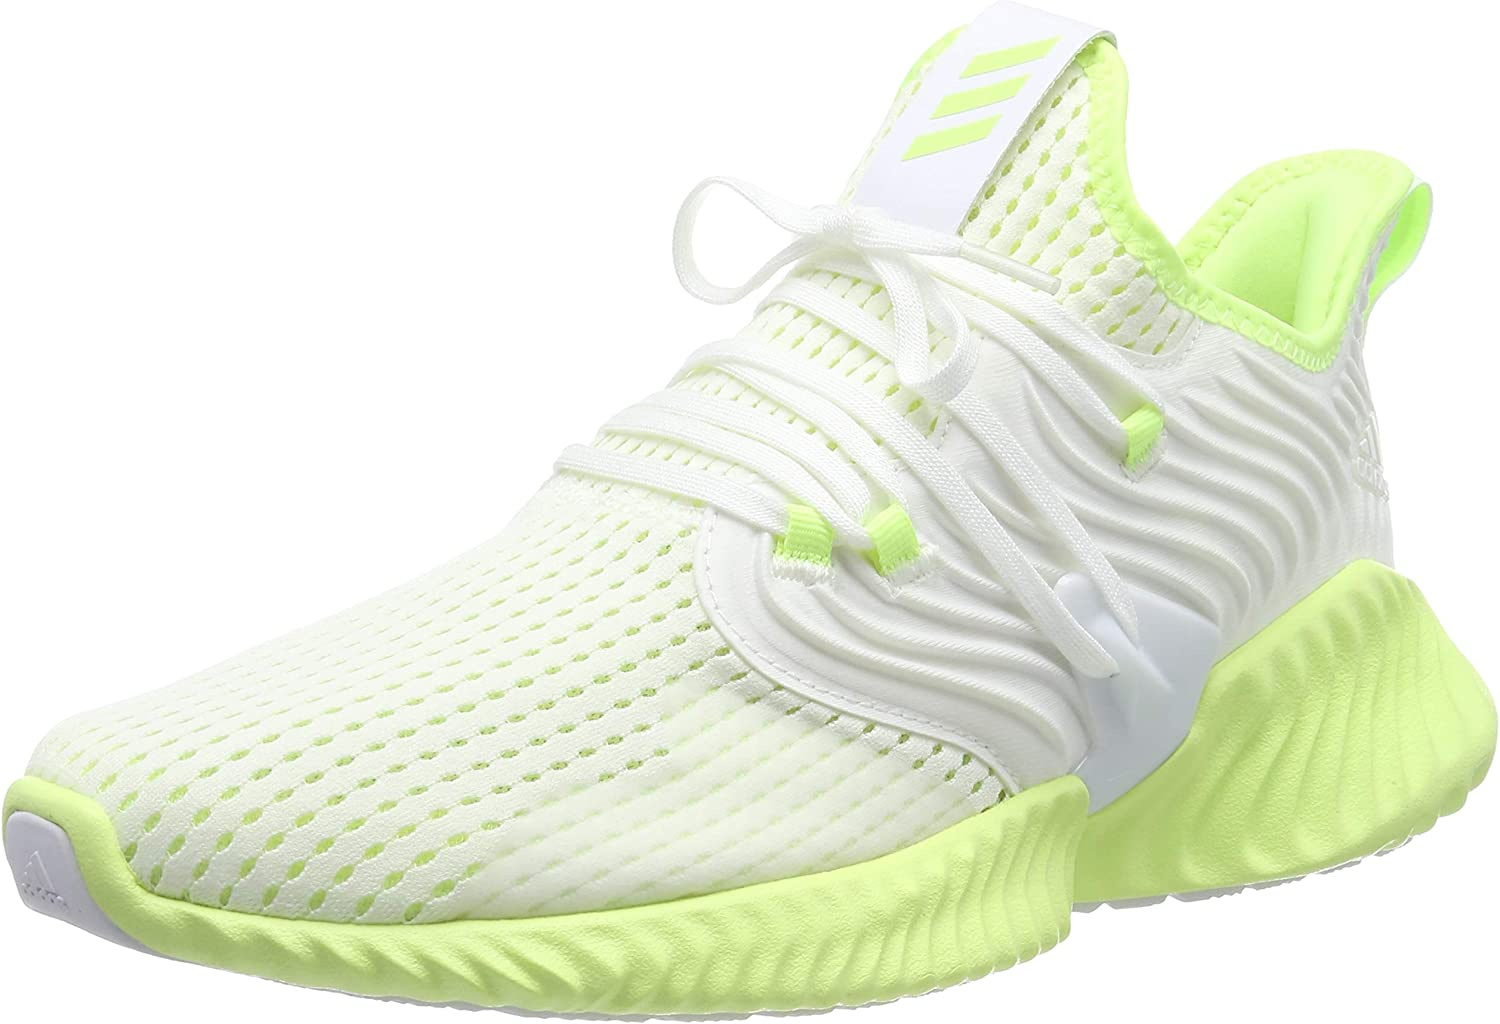 Adidas Men's Alphabounce Instinct Cc M Running shoes